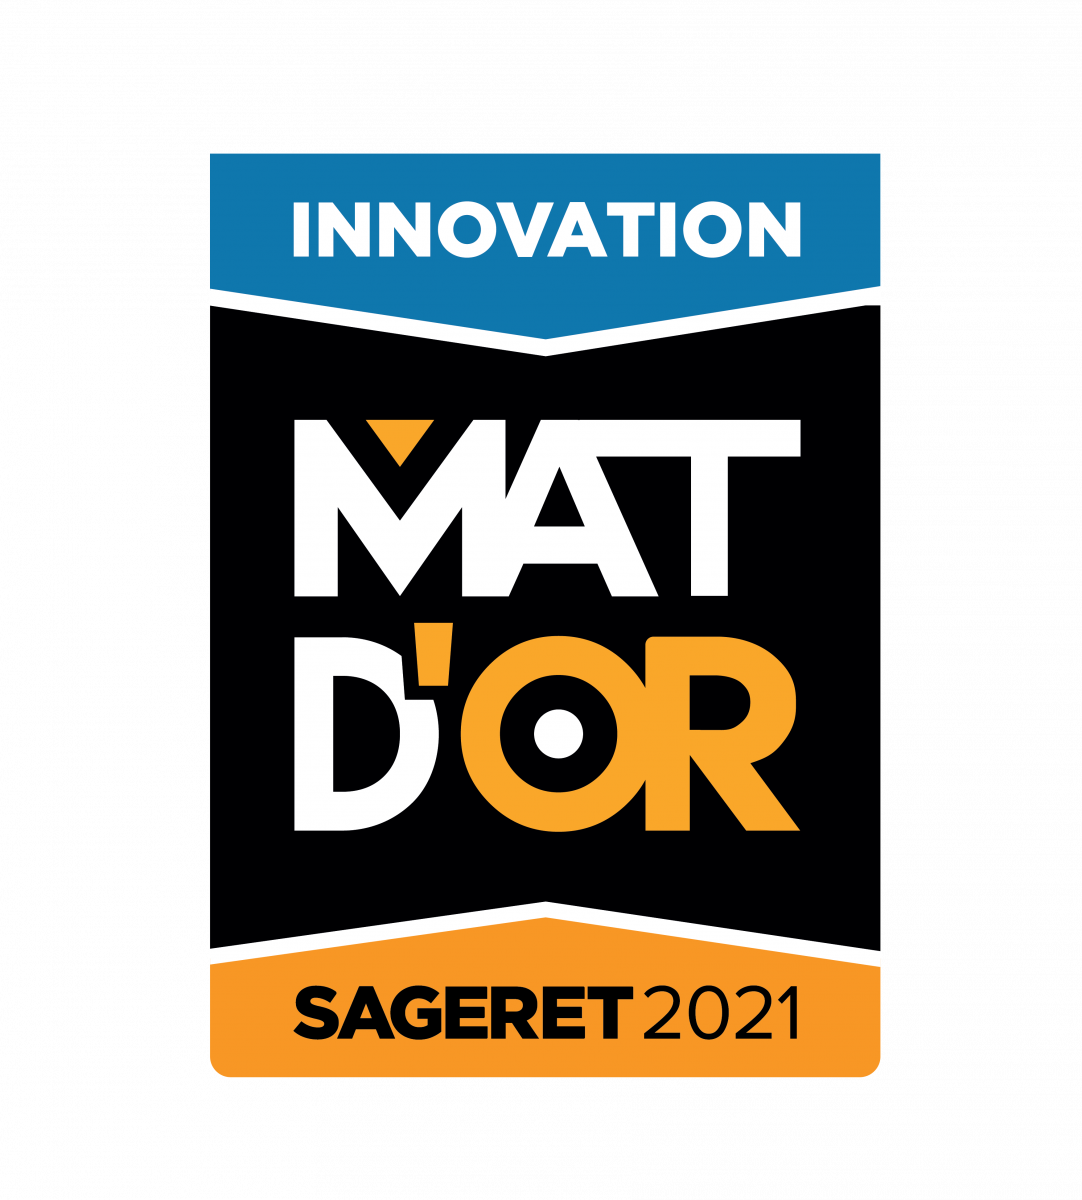 logo_matdor-innovation.png